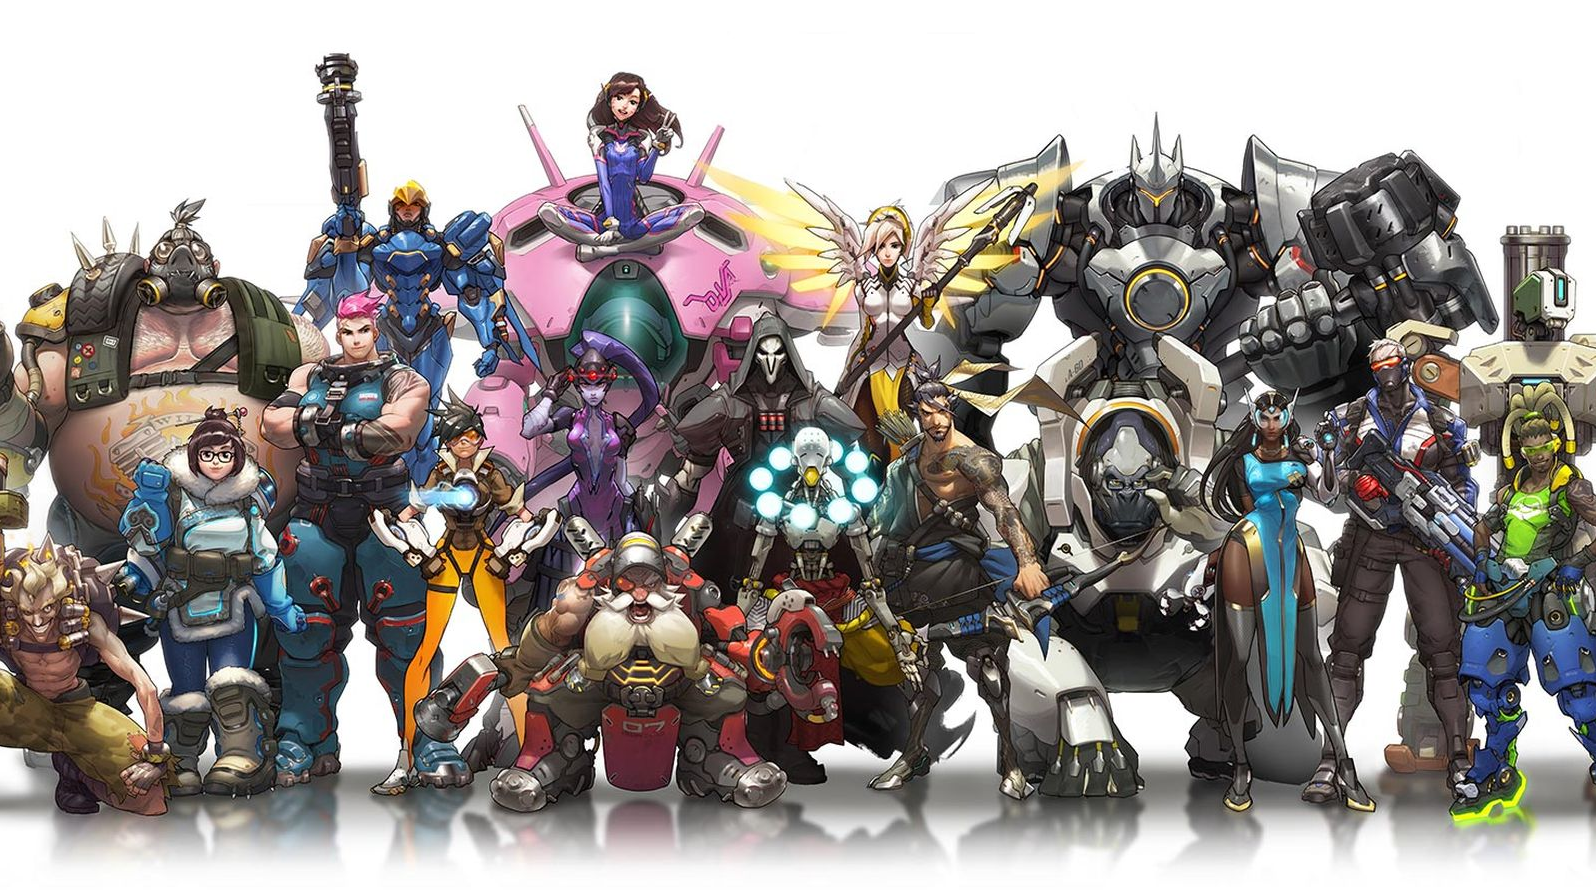 Blizzard Really Wants Overwatch Characters In Smash